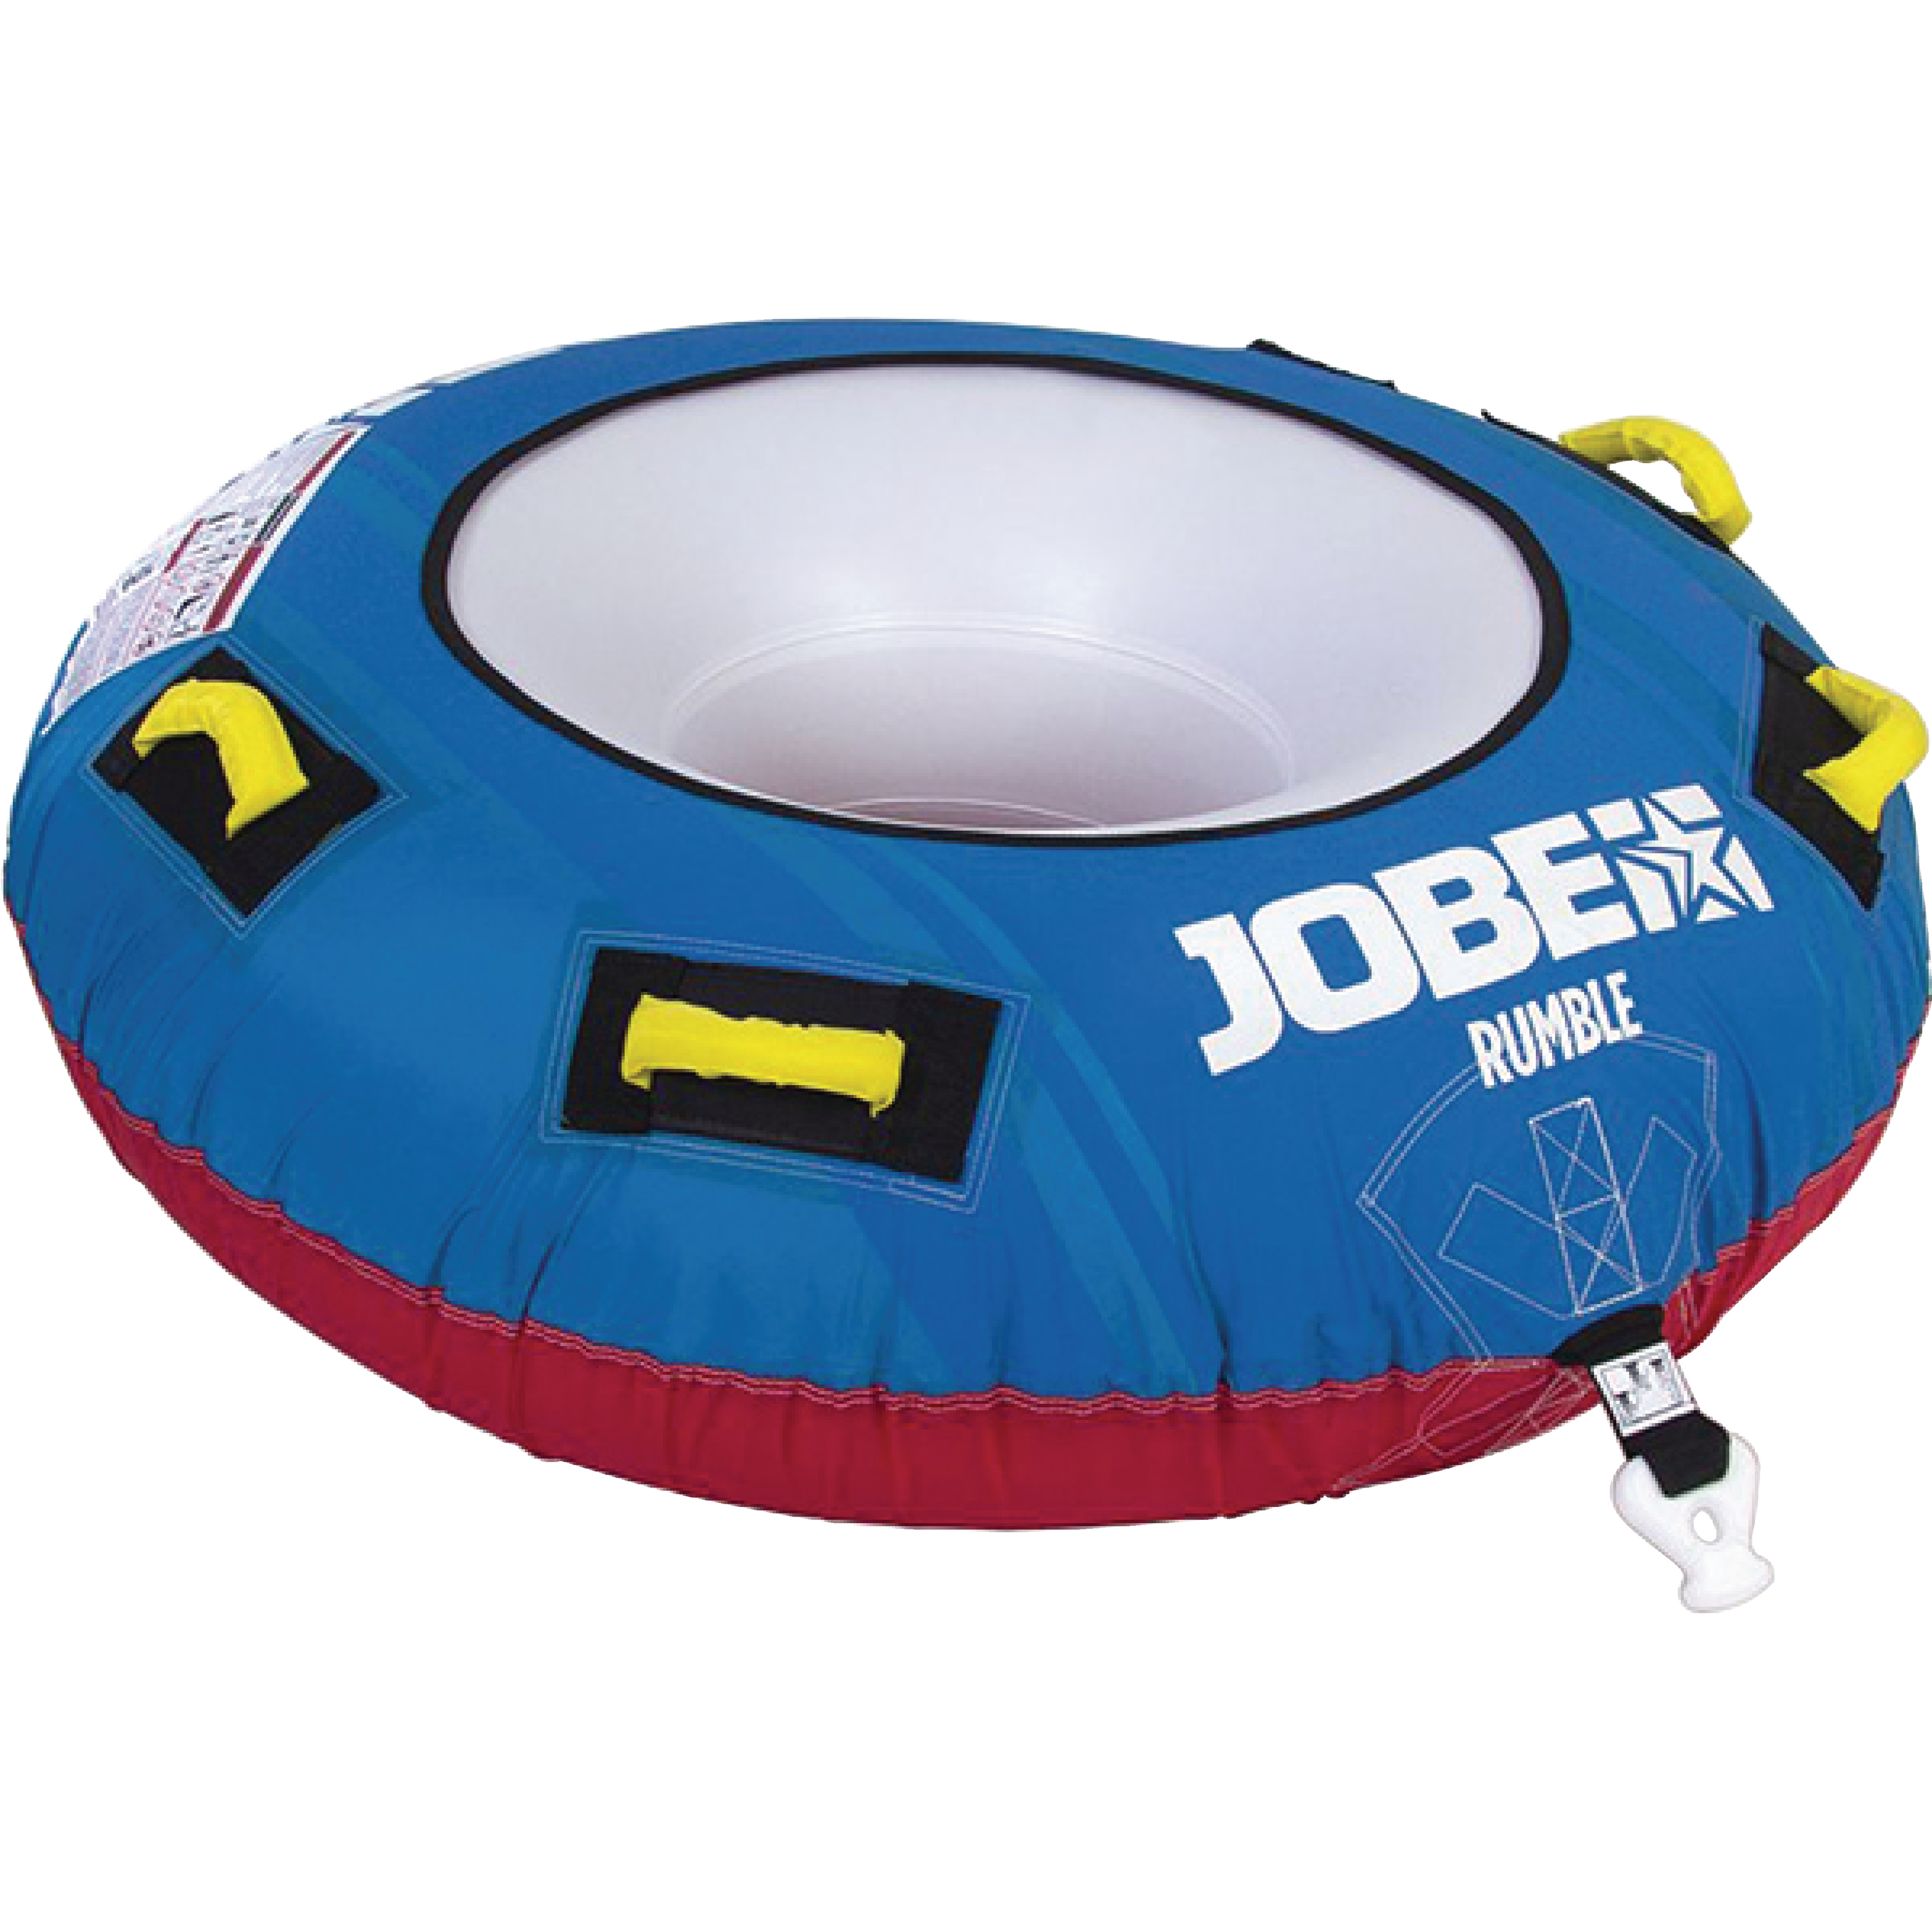 Jobe 230117001 Blue Rumble 1 Person Rider Open Top Inflatable Towable